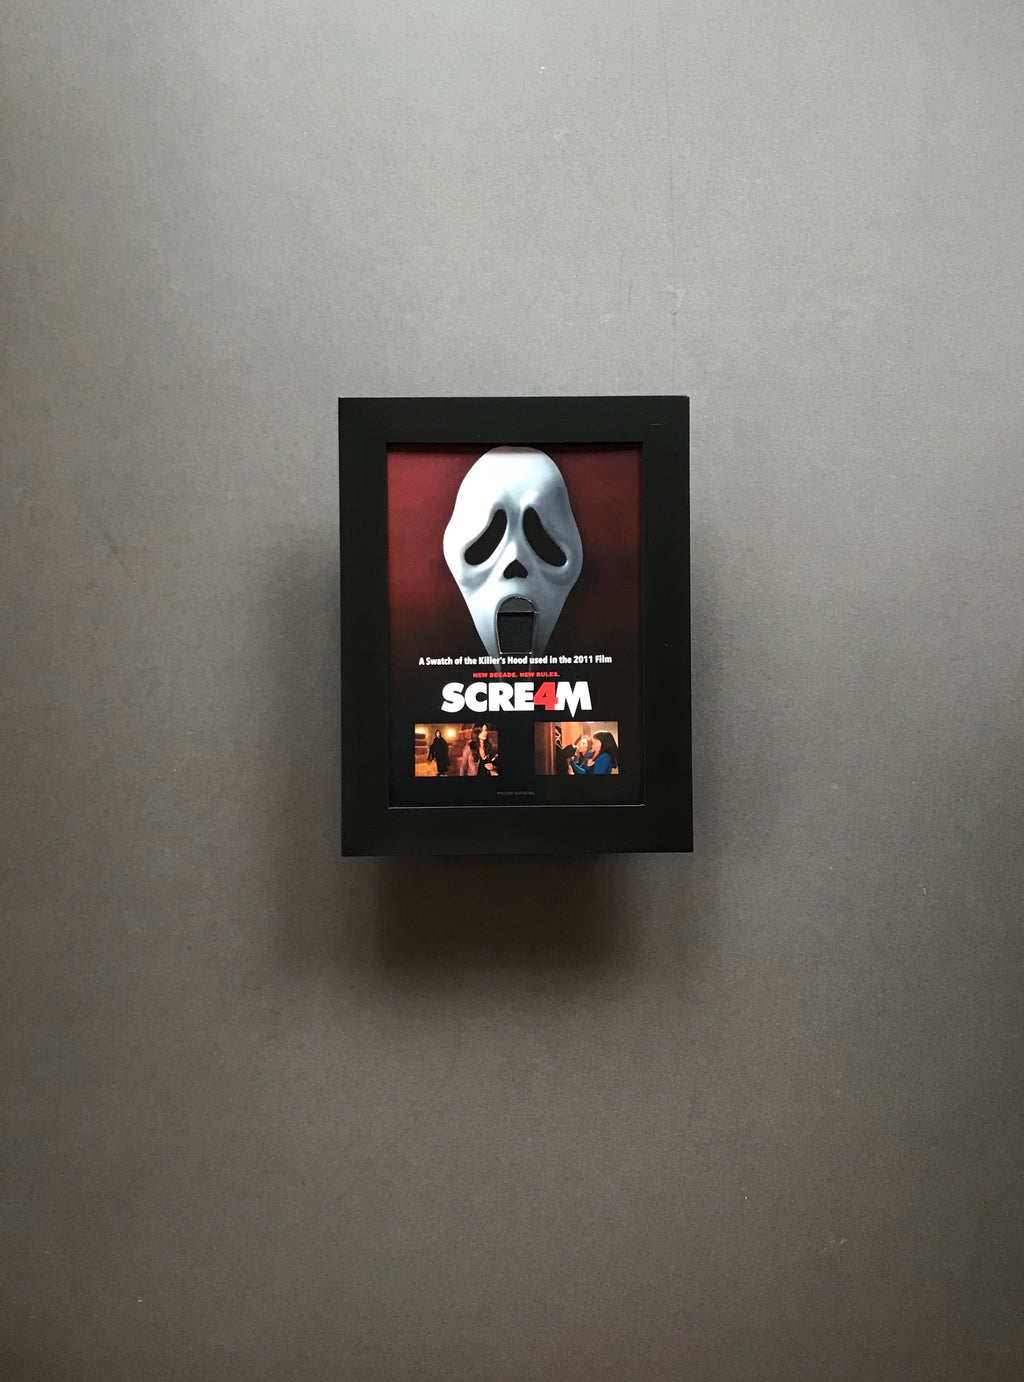 Scream 4 (2011) - A Swatch of the Killer's Hood